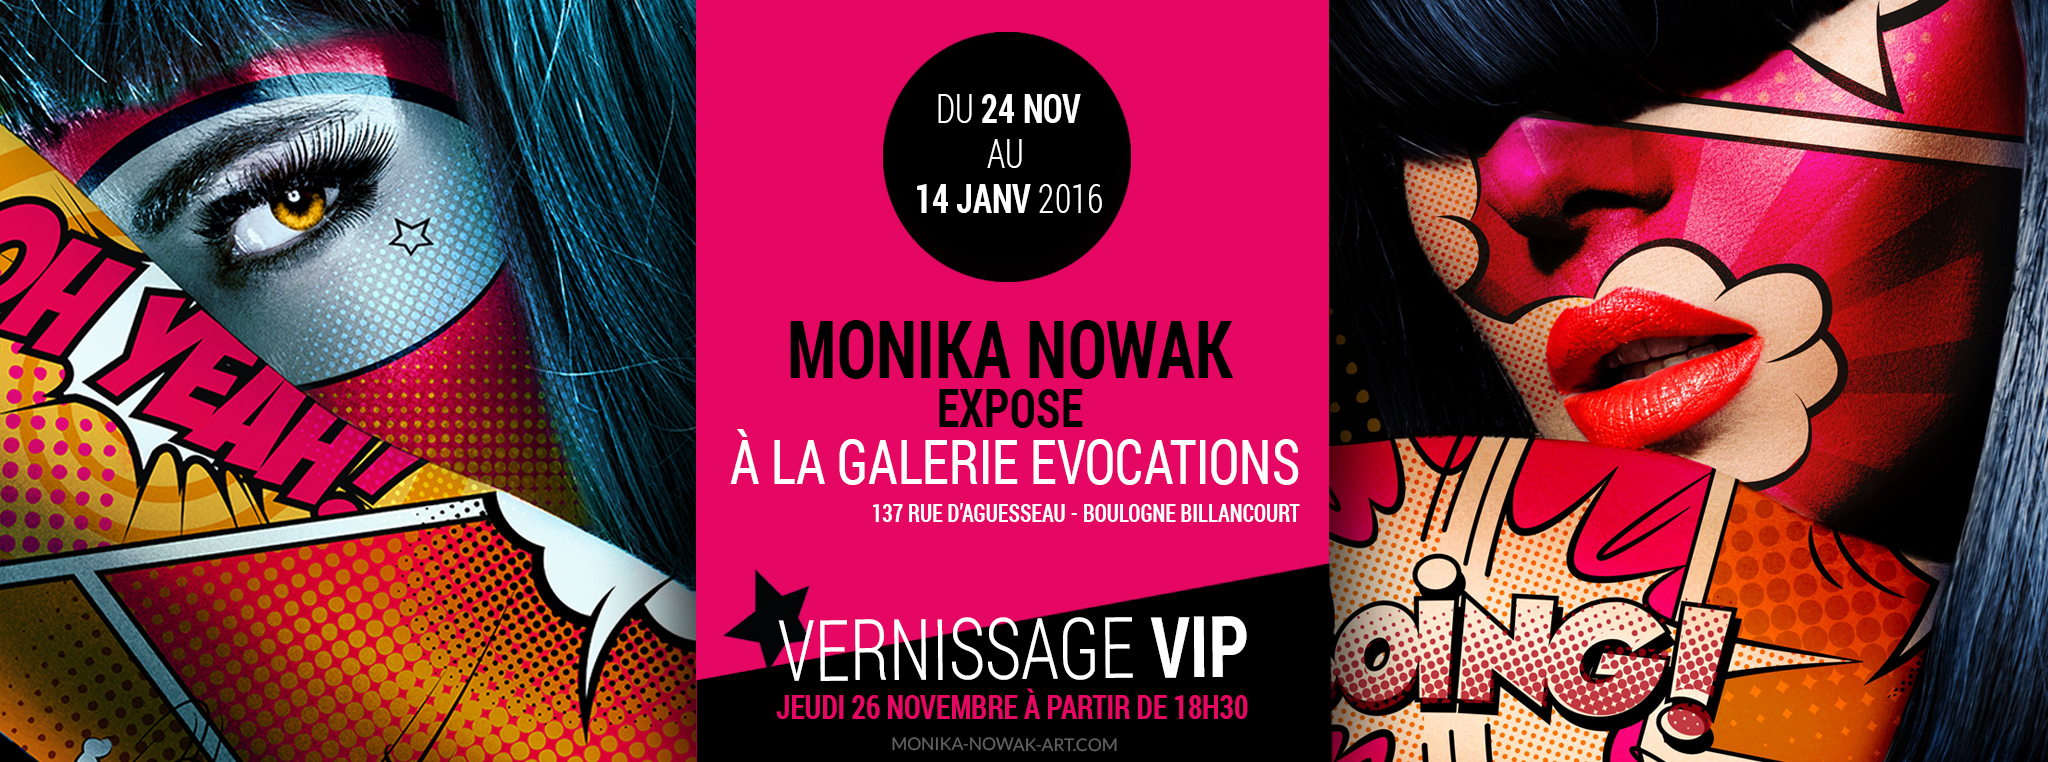 invitation monika nowak